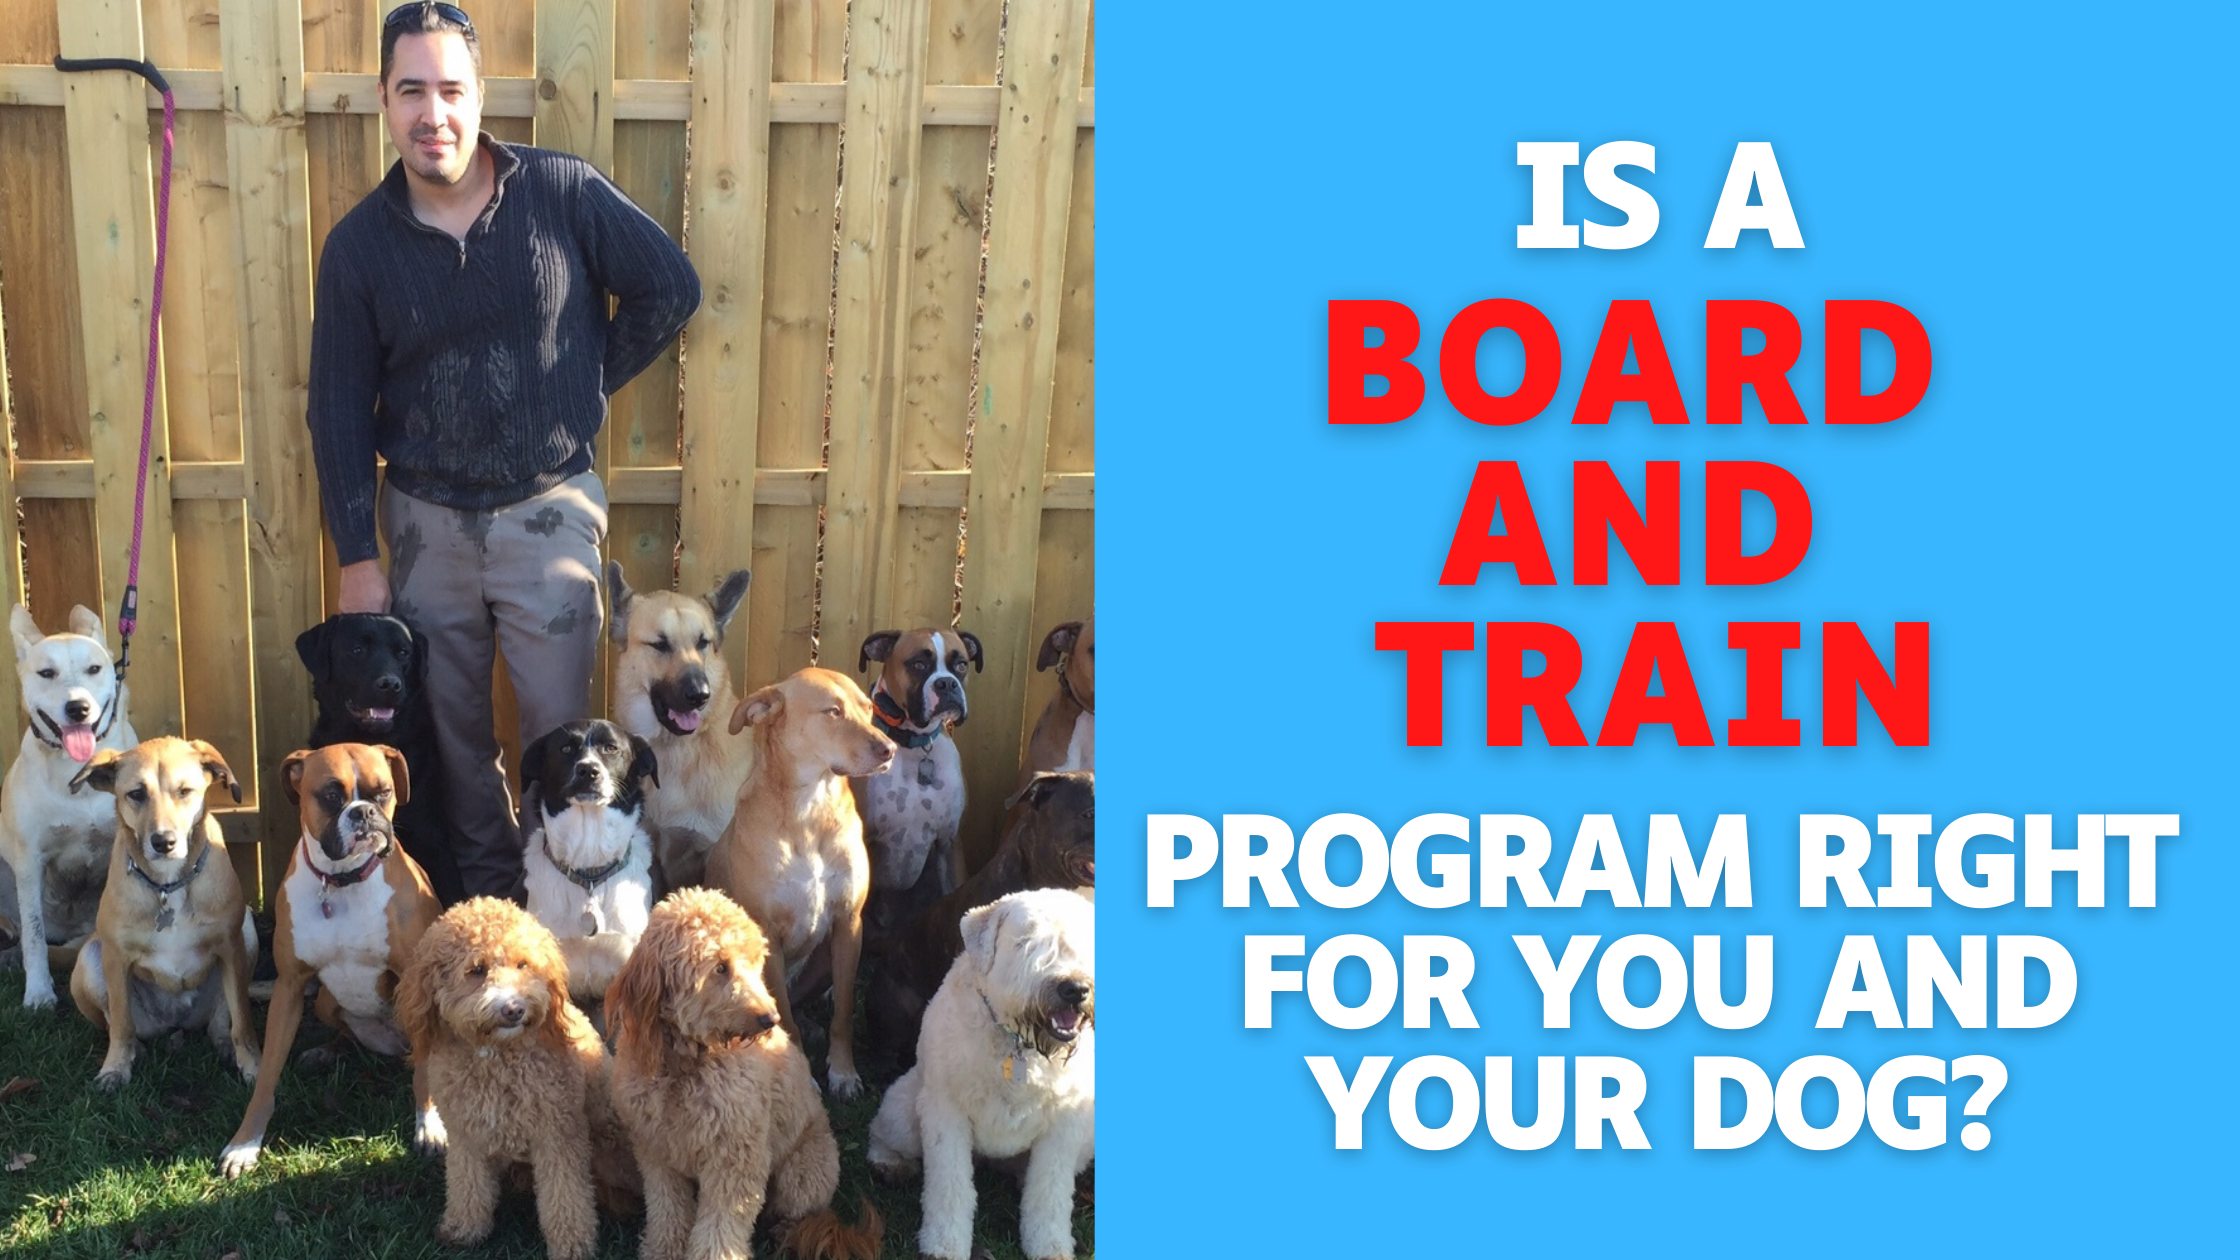 Is A Board And Train Program Right For You And Your Dog?